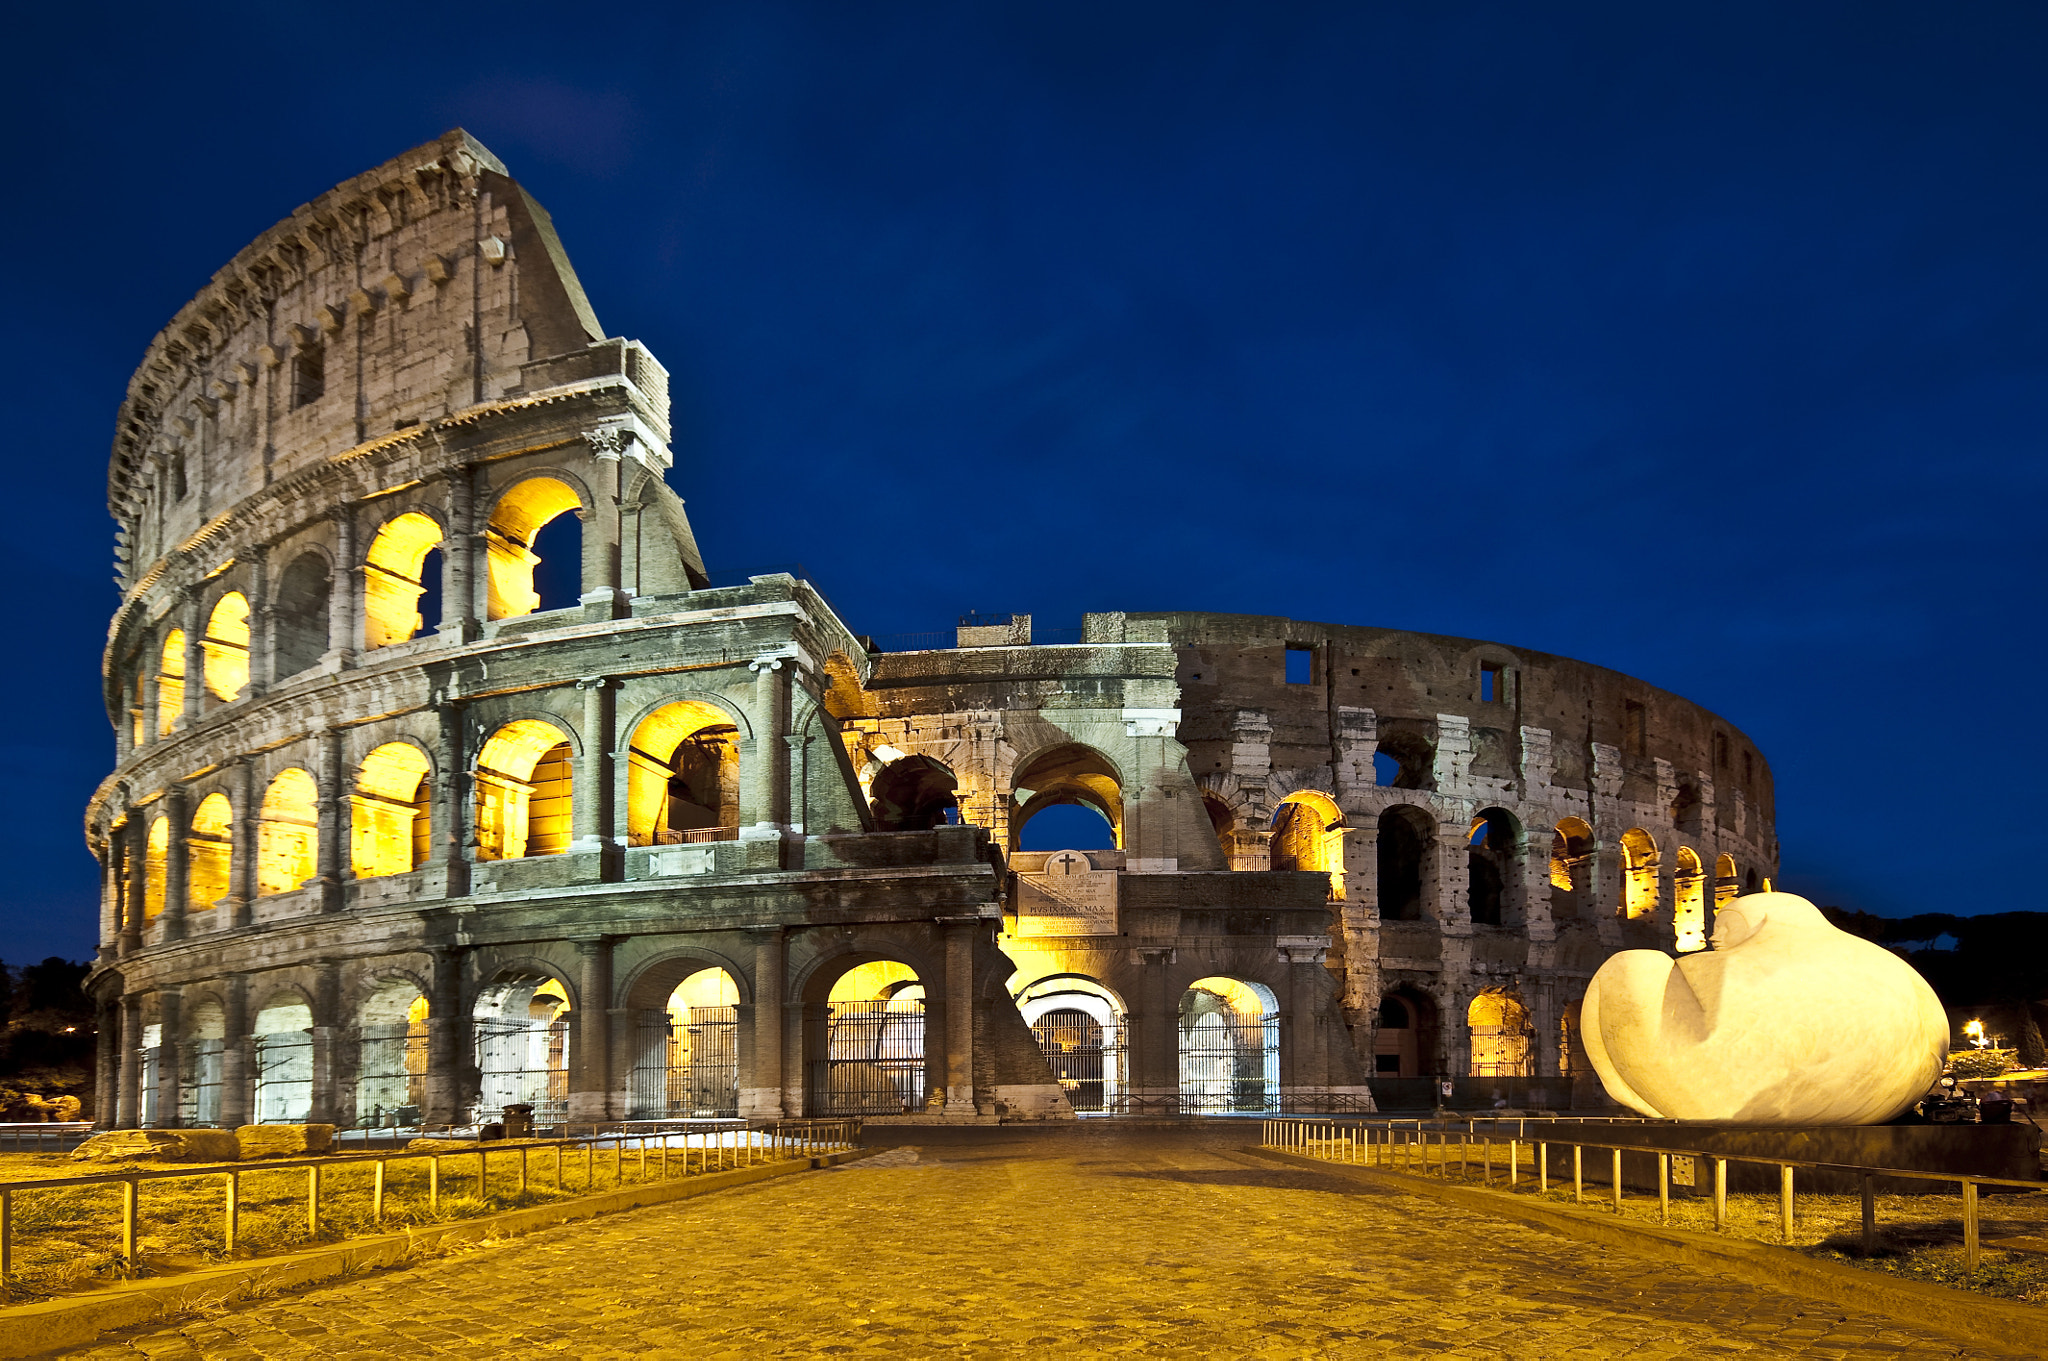 Photograph Colosseum by Fredrik Knoph on 500px